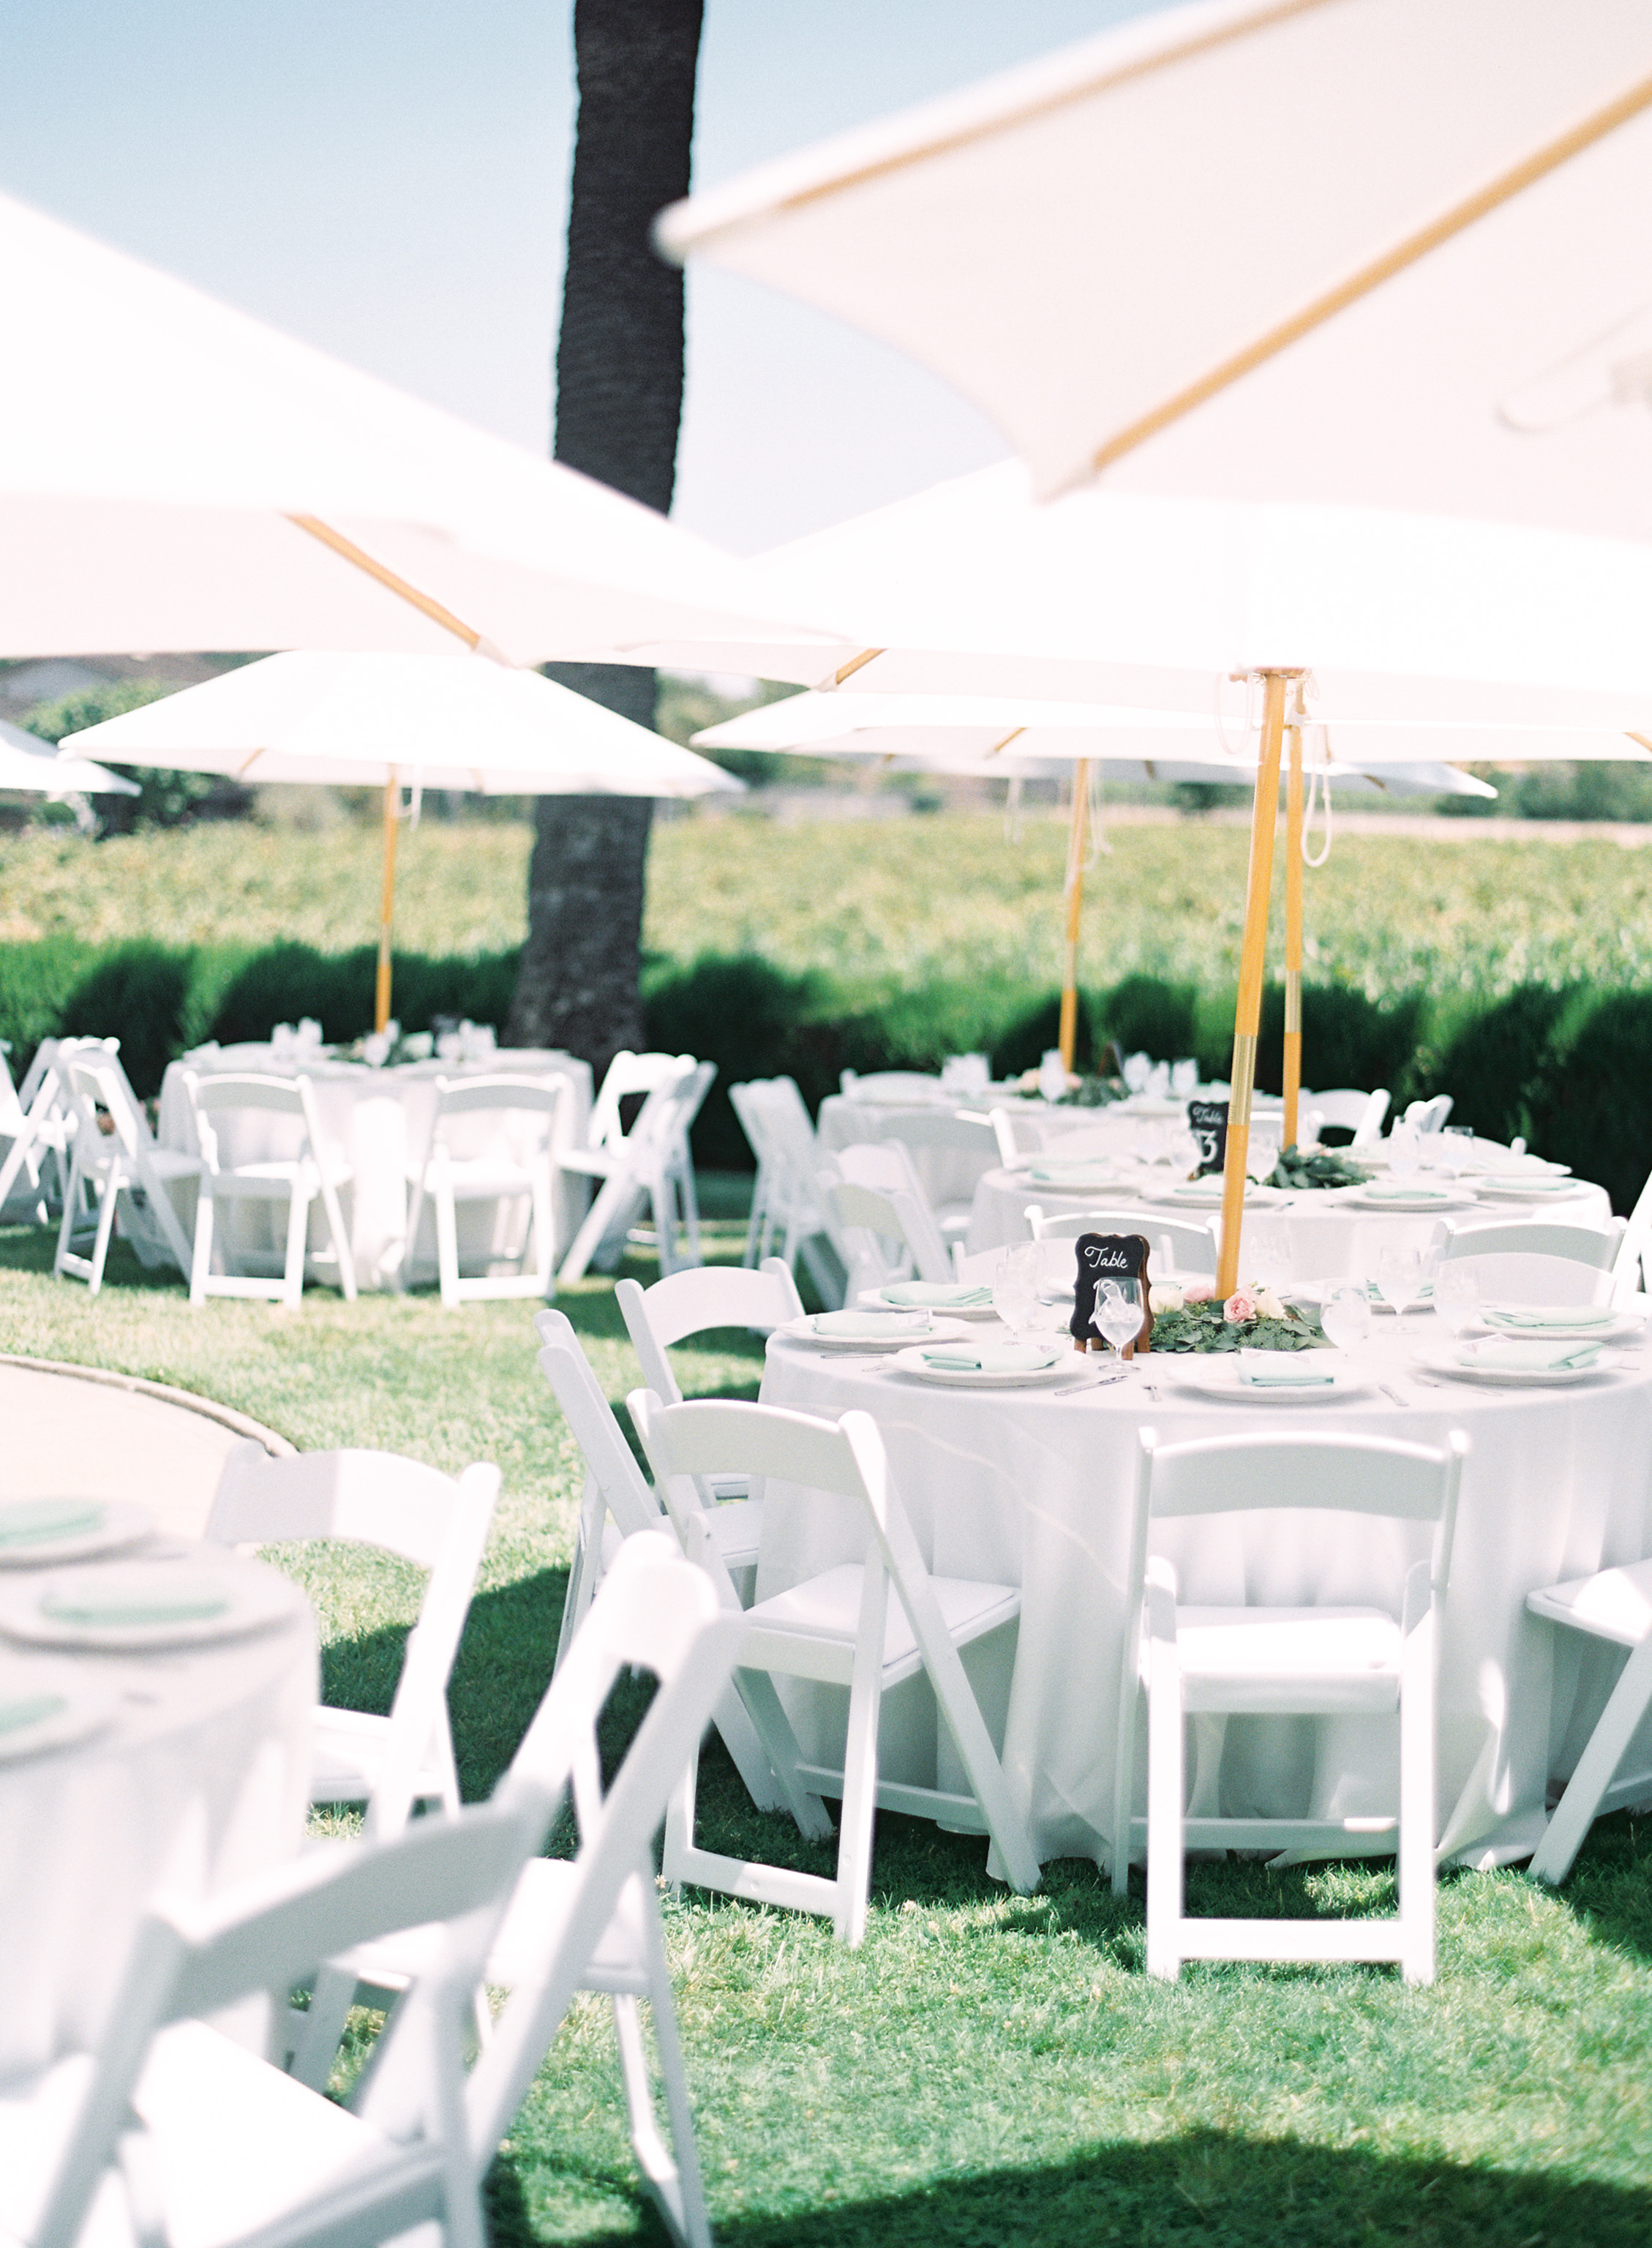 southern-inspired-wedding-at-ravenswood-historic-site-013-7.jpg